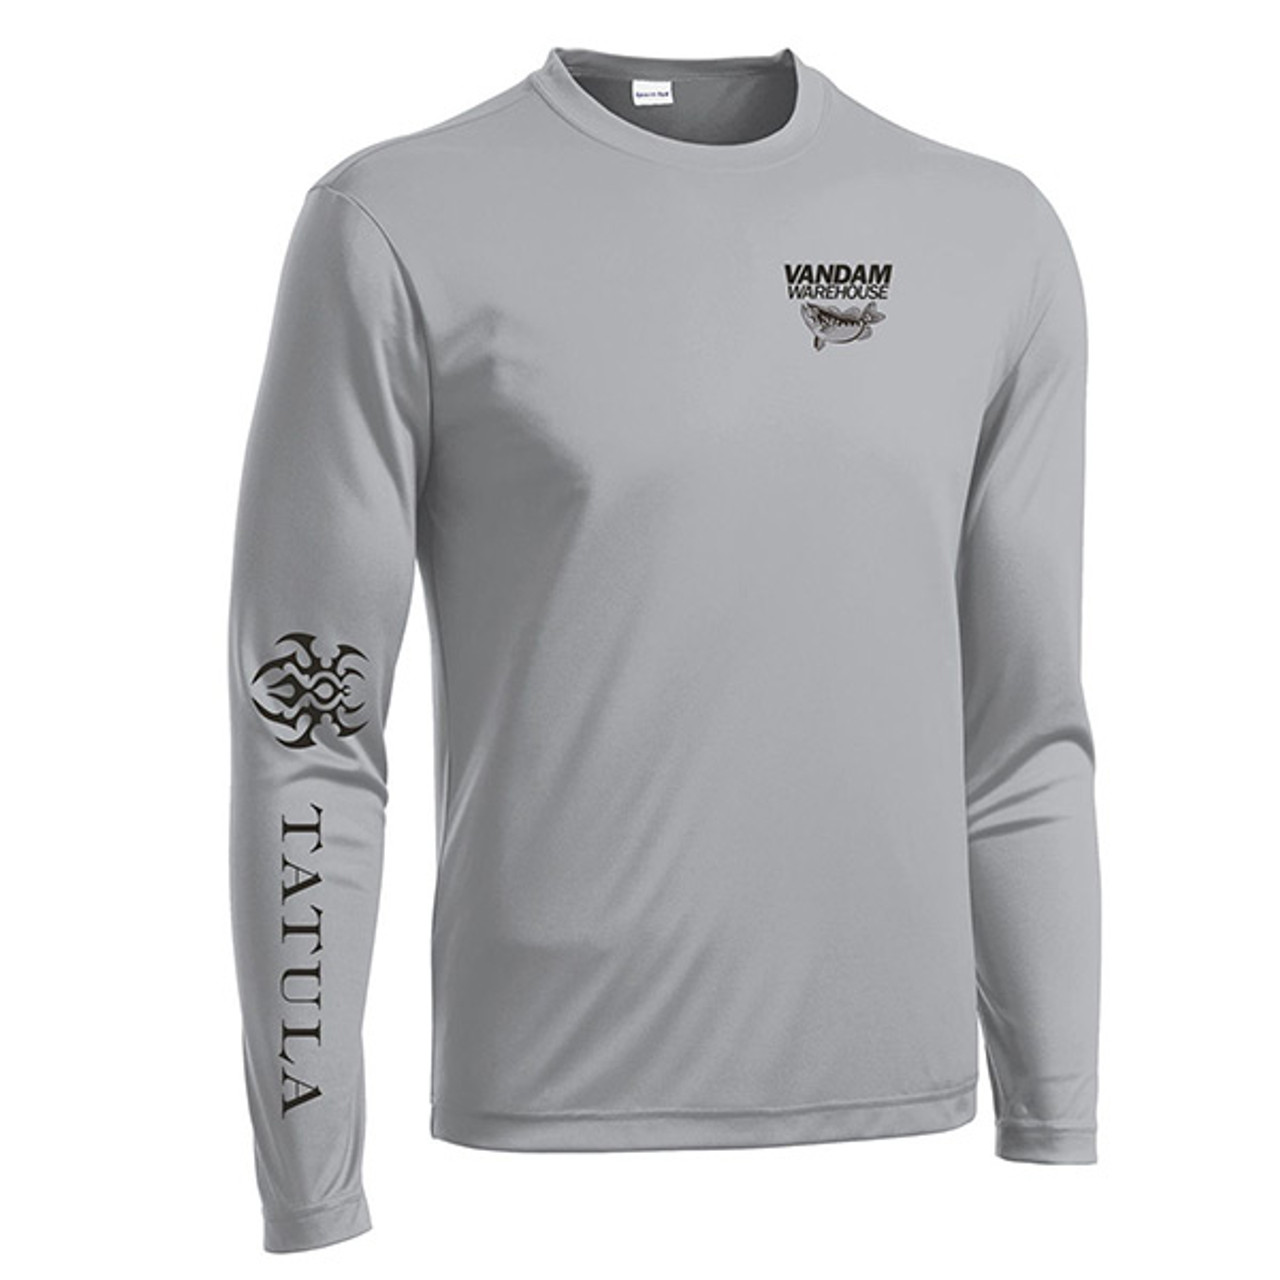 VanDam Warehouse Daiwa Tatula Performance Shirt - Silver Front